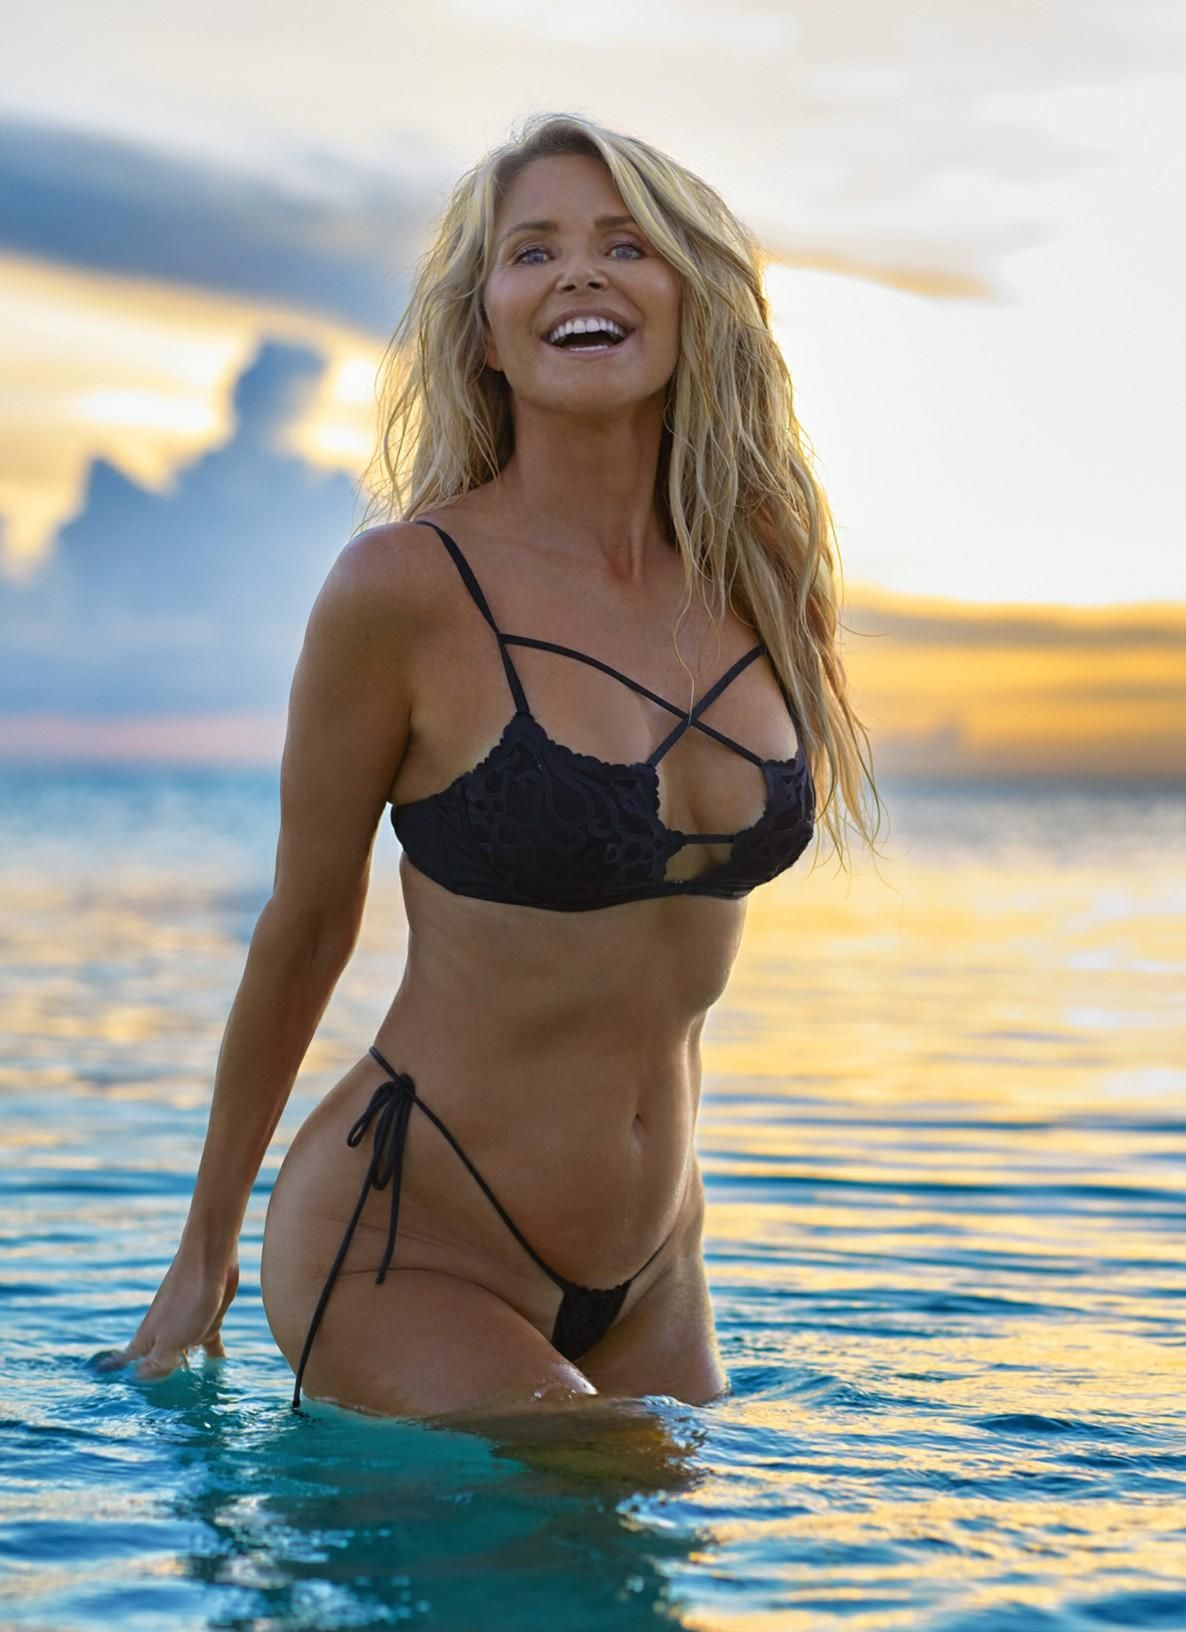 Last Year's Illustrated Year 64 Christie Brinkley Old In Sports 9DeEH2IYW